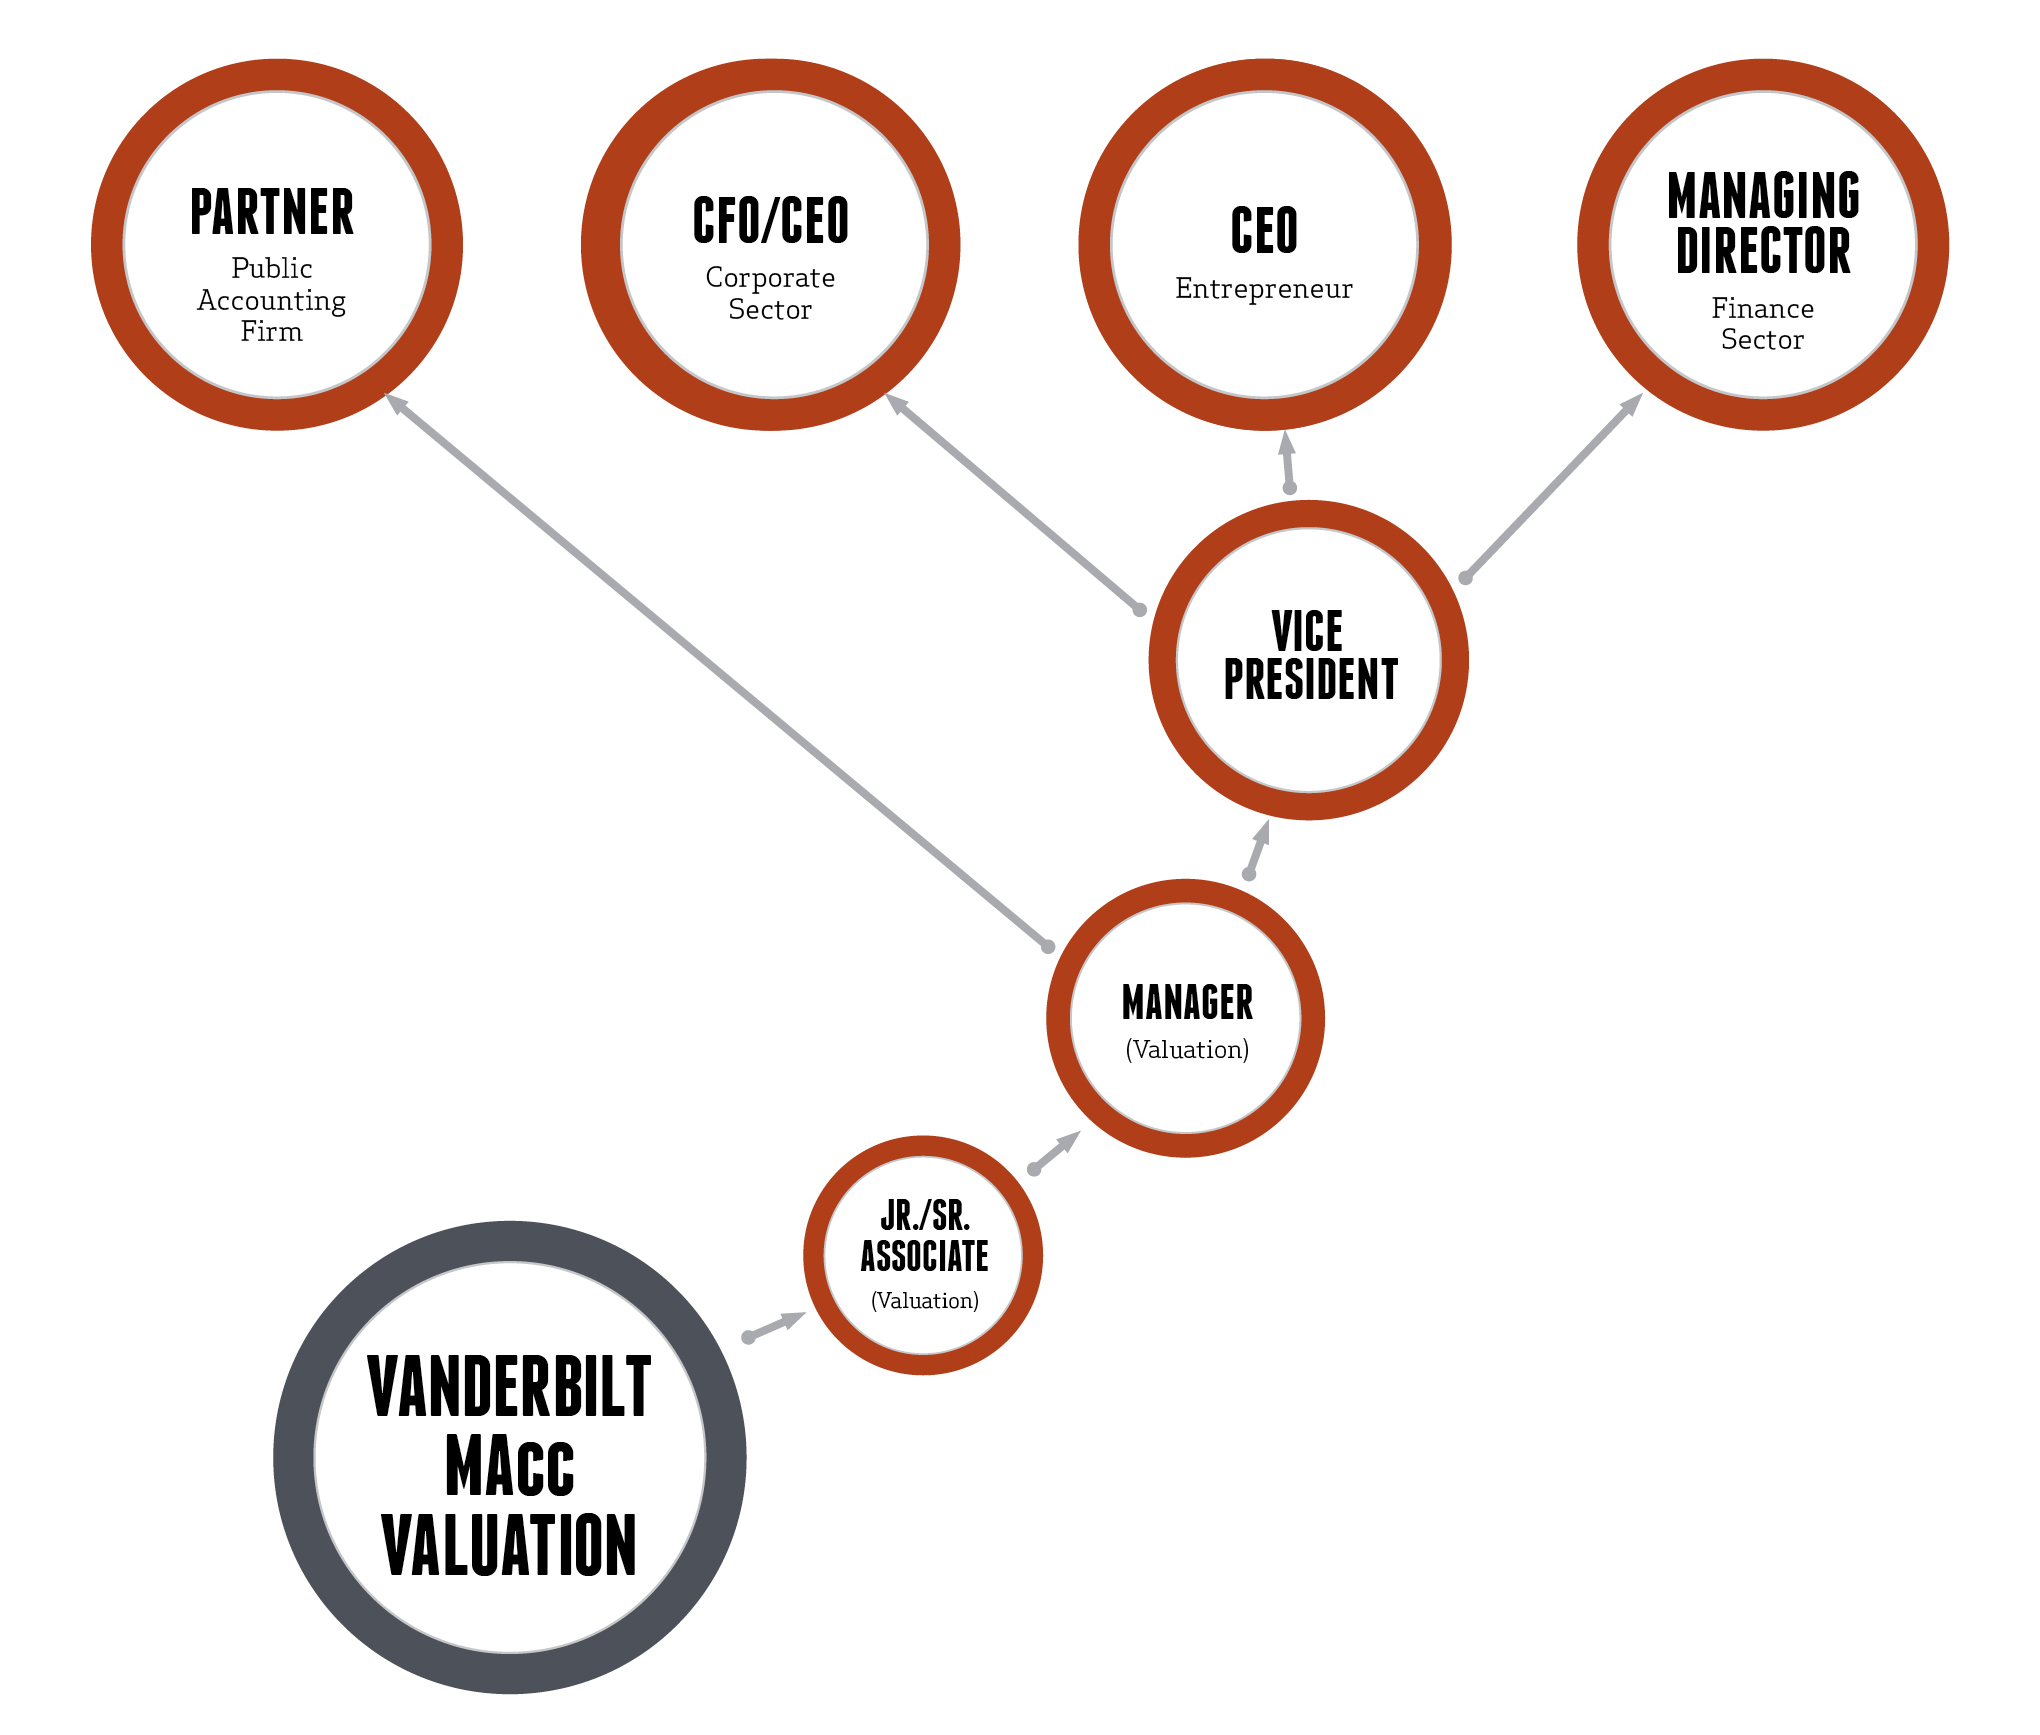 MAcc Valuation Career Paths Graphic